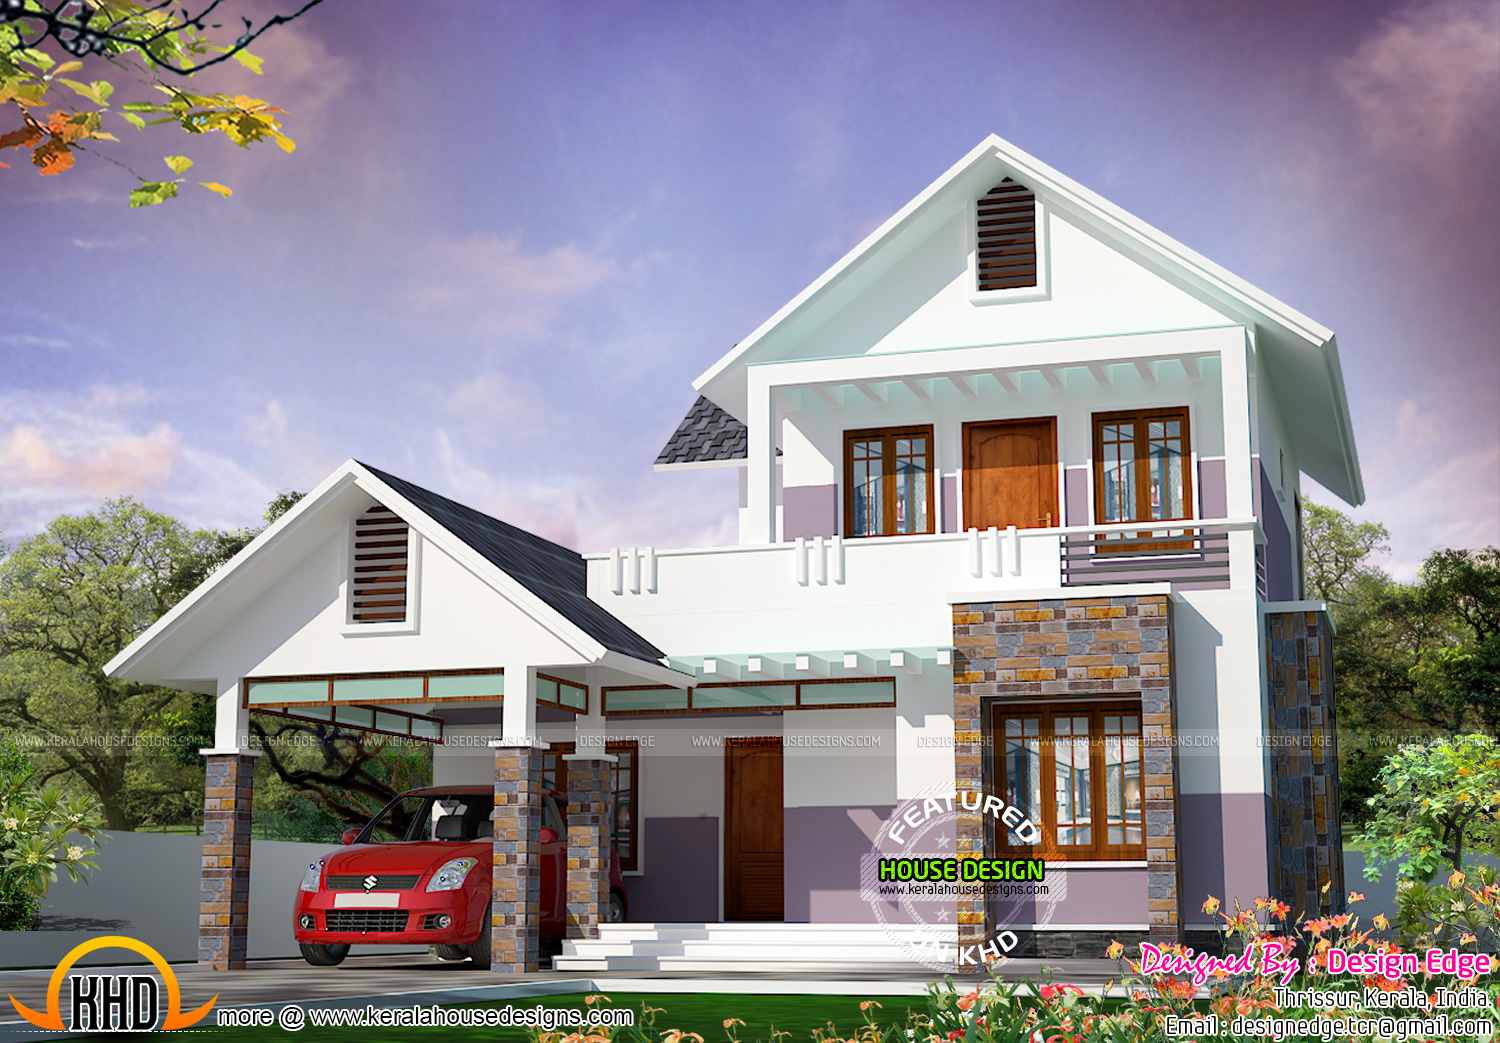 Simple modern house in 1700 sq ft kerala home design and floor plans Simple modern house designs and floor plans